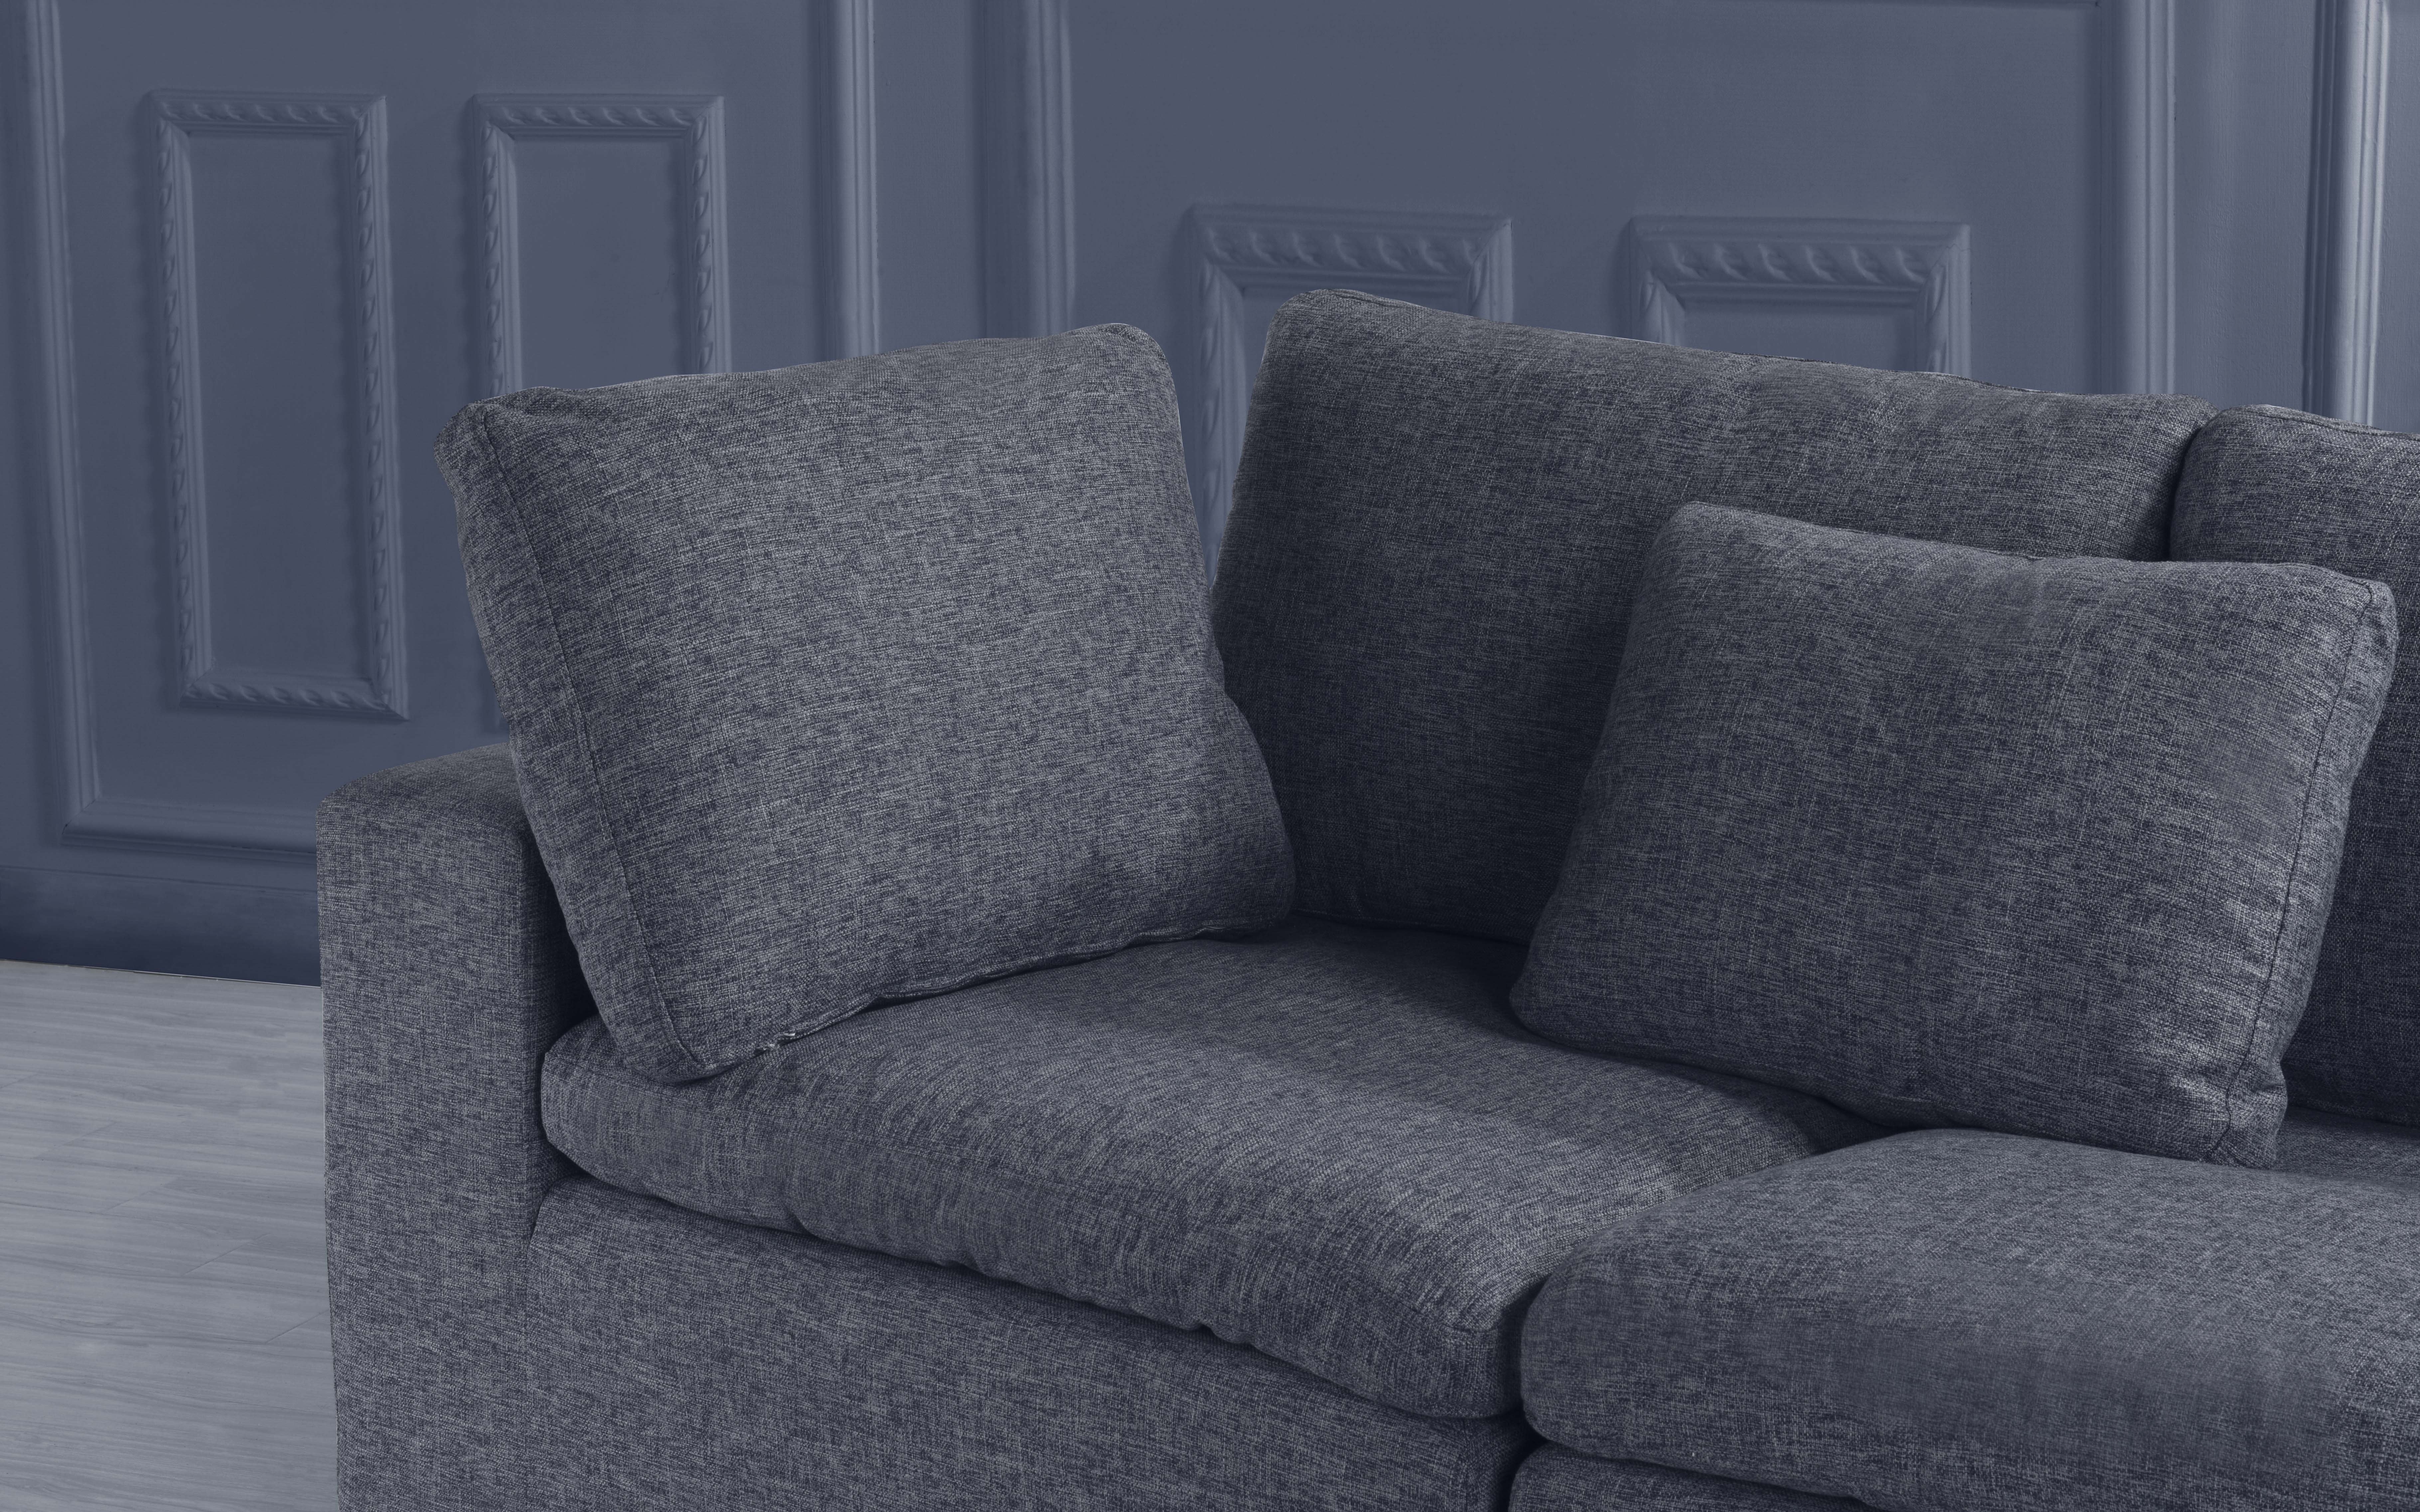 Details about Large Couch Classic Lounge Sofa Living Room Linen Fabric Sofa  (Dark Grey)